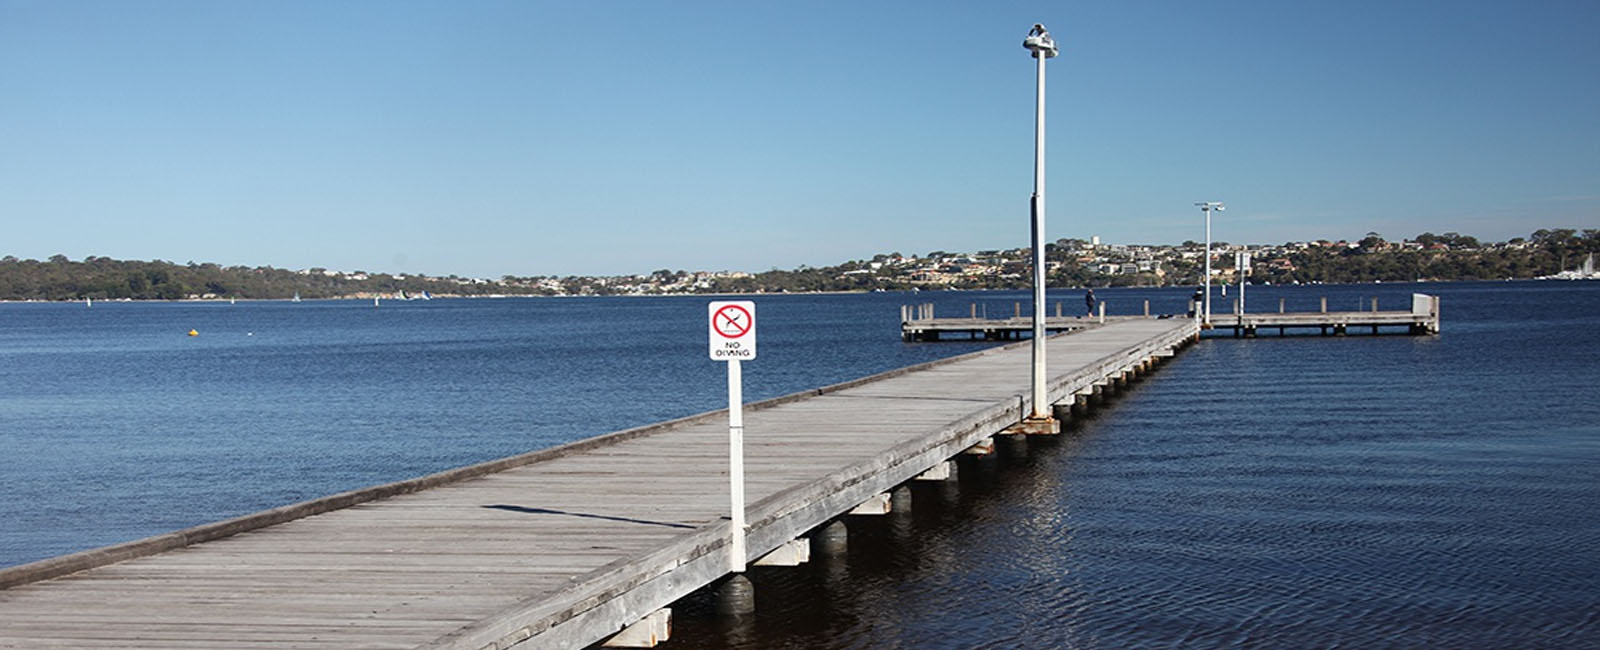 CLAREMONT-JETTY-Claremont-Jetty-Road